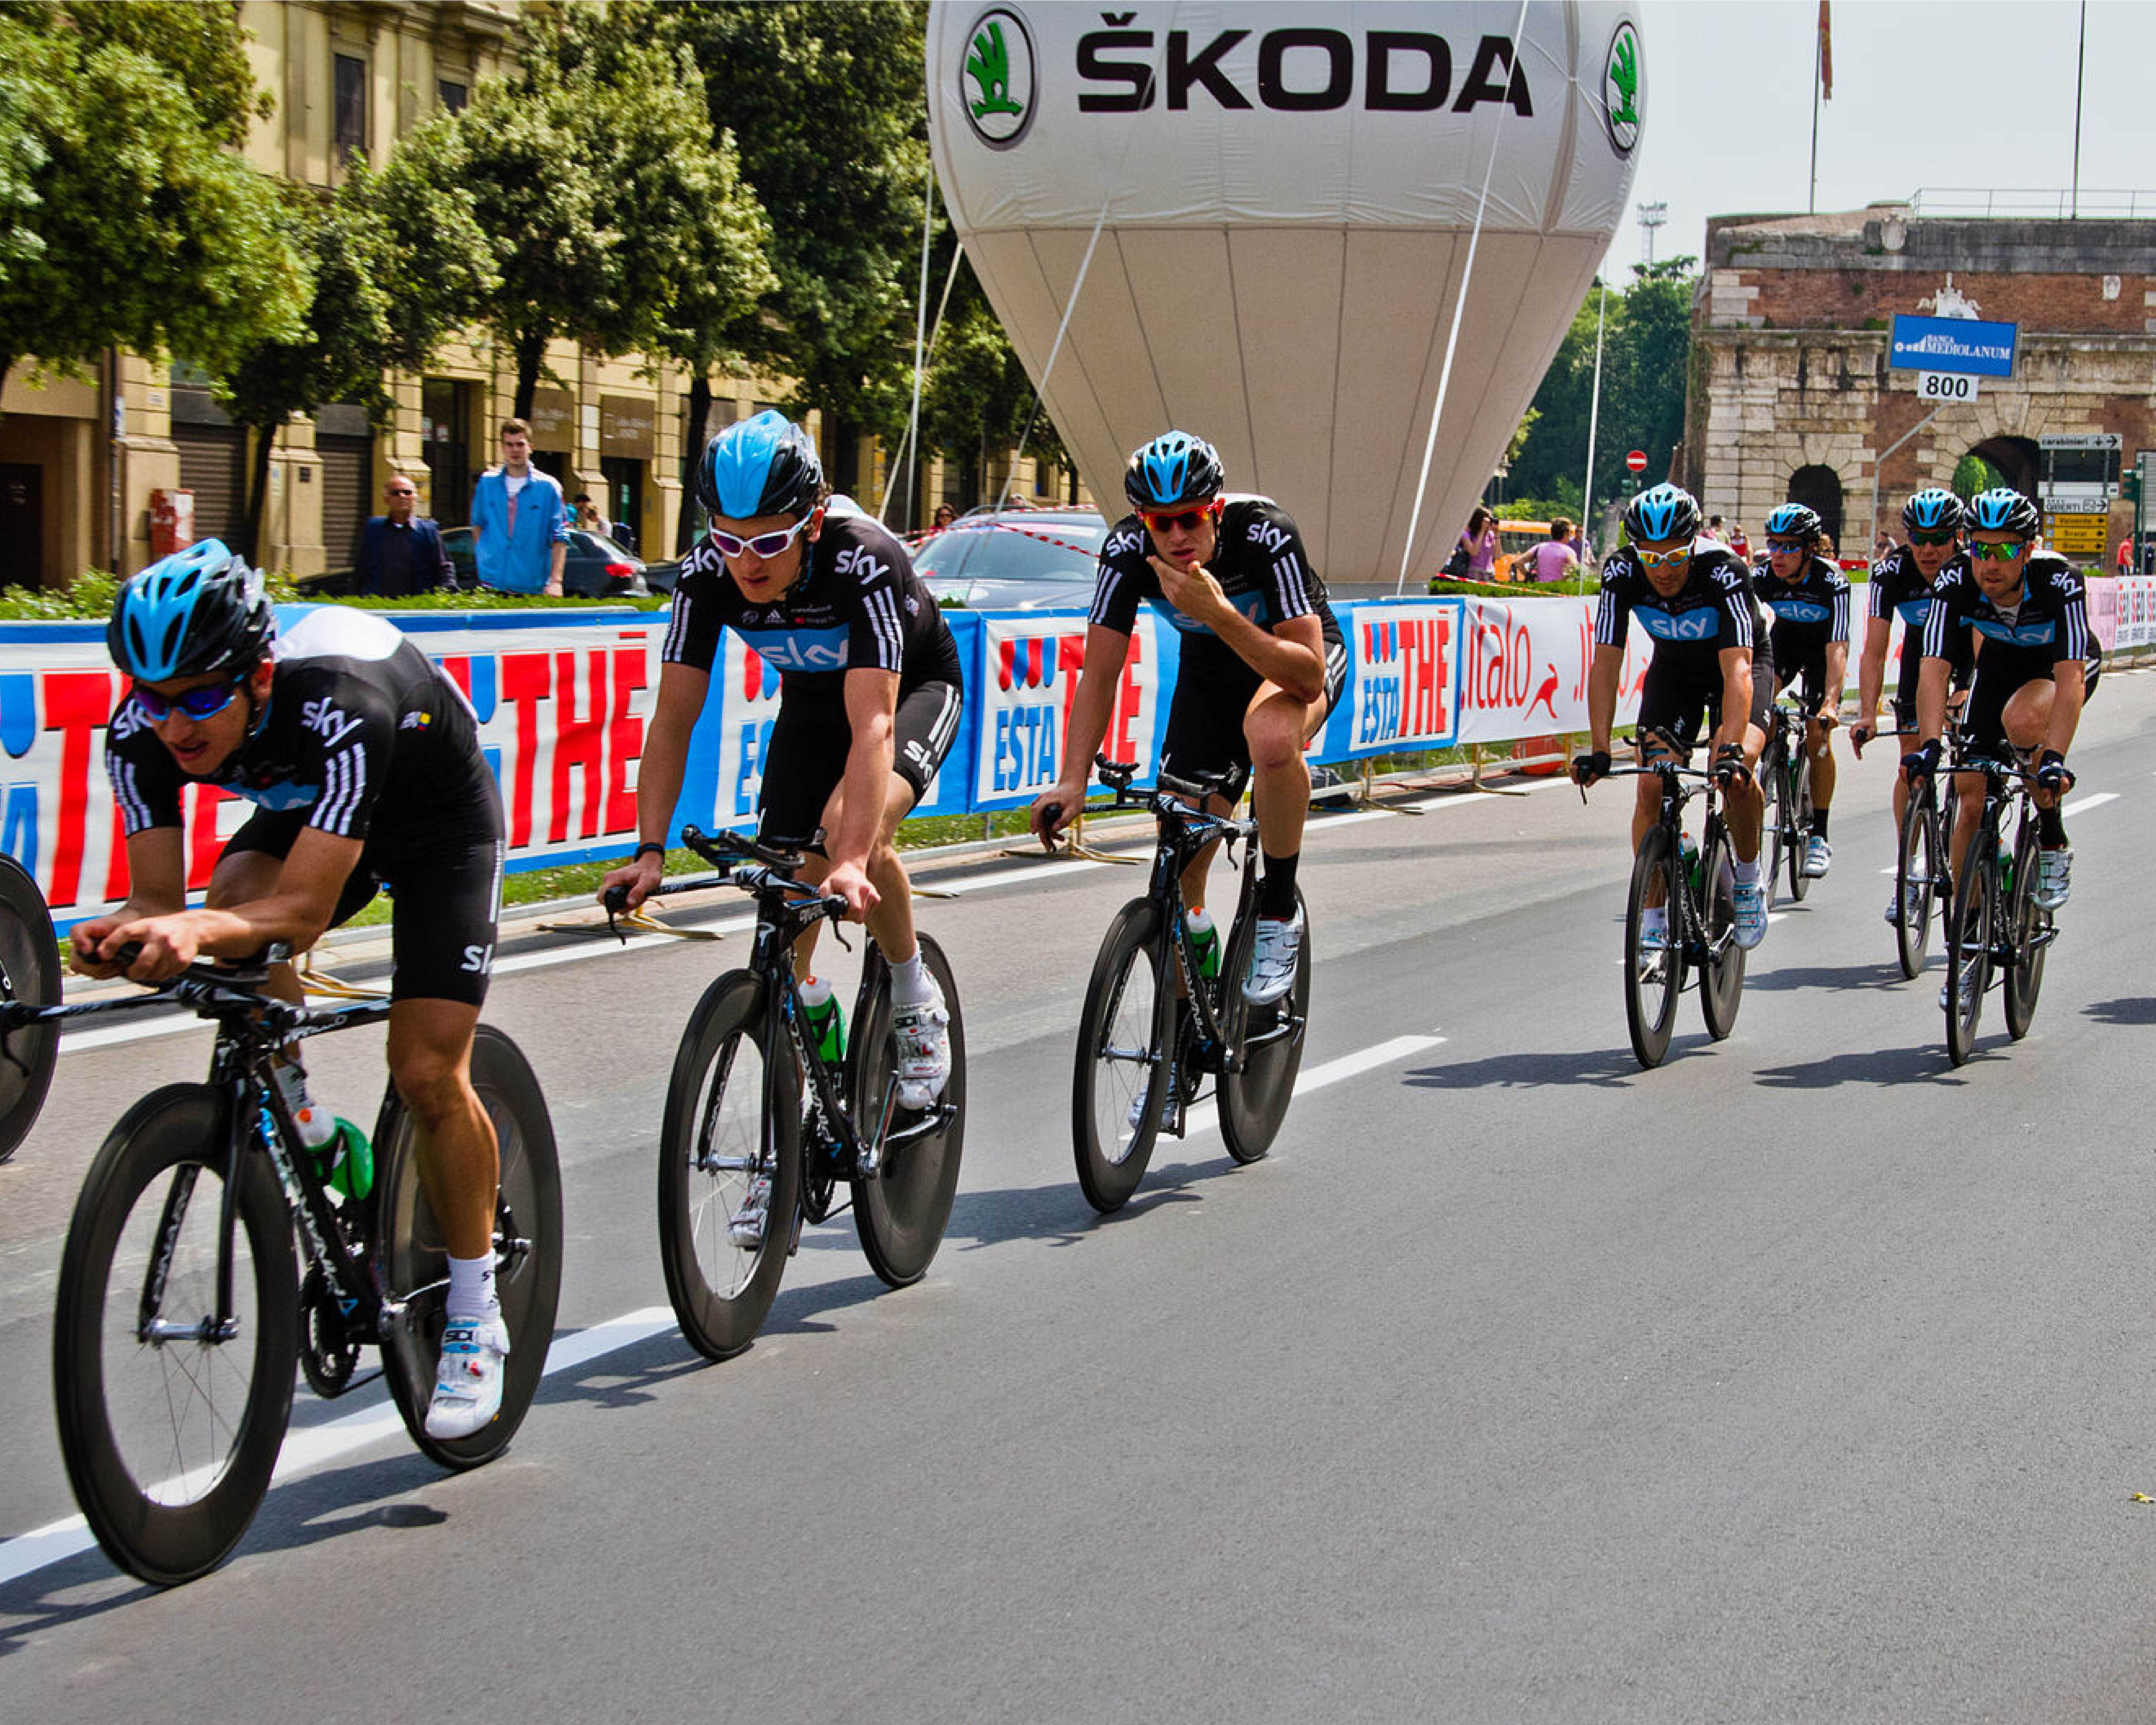 UK Cycling team elicits controversy amidst alleged doping investigation